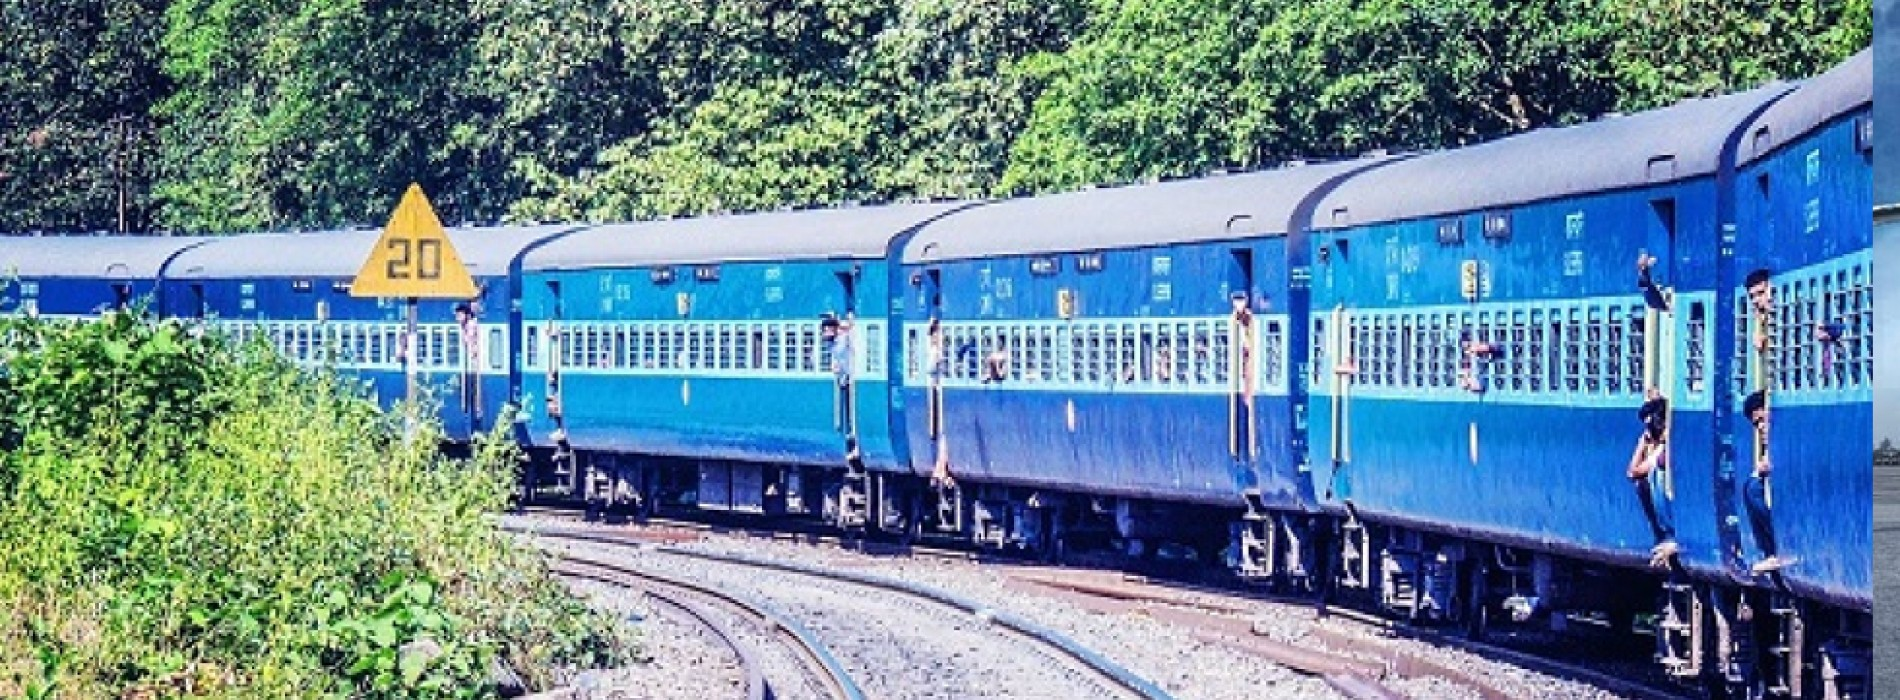 Train services disrupted by blockade in Assam